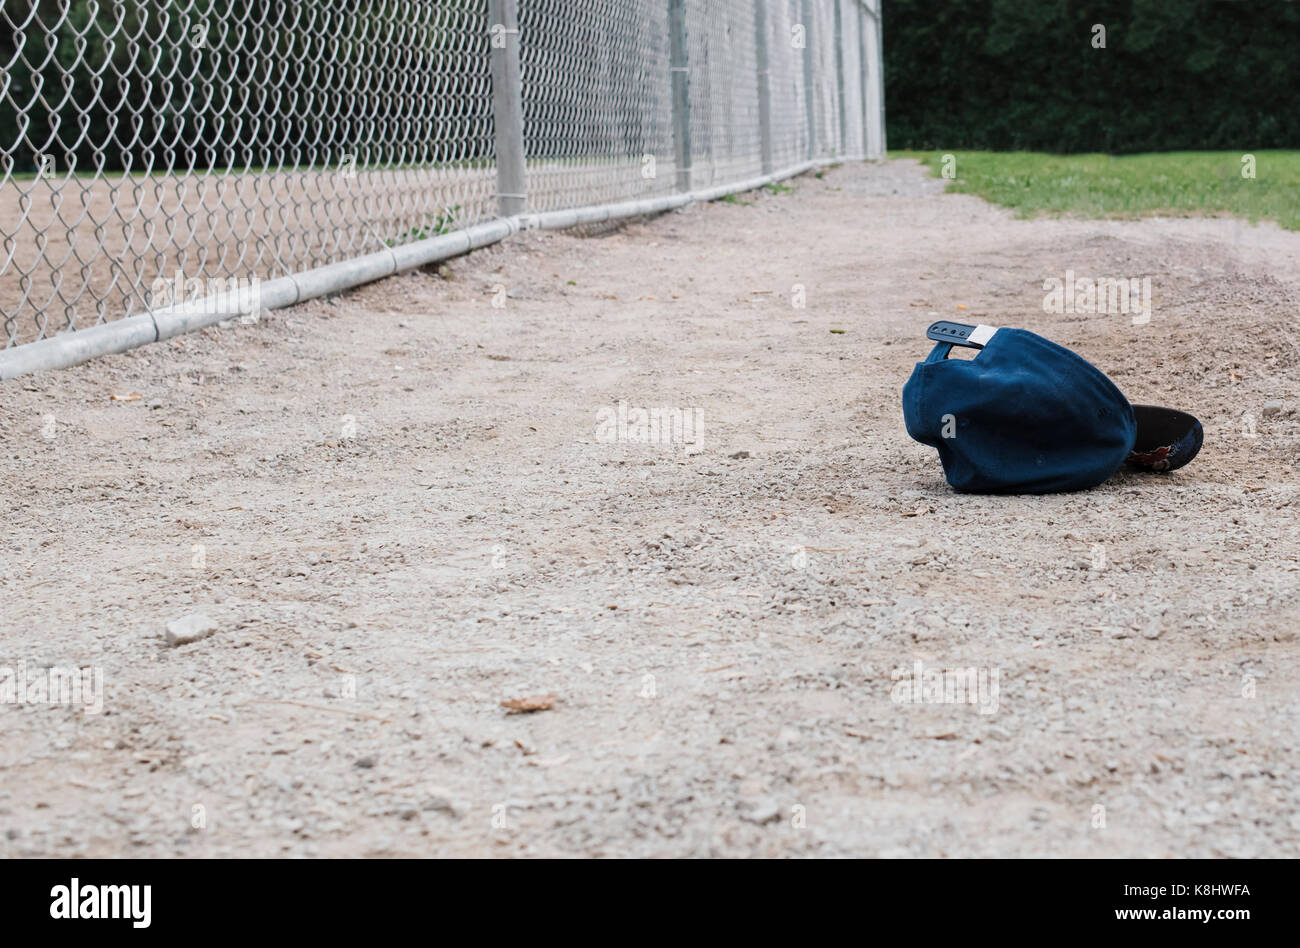 Cap on playground by chainlink fence - Stock Image